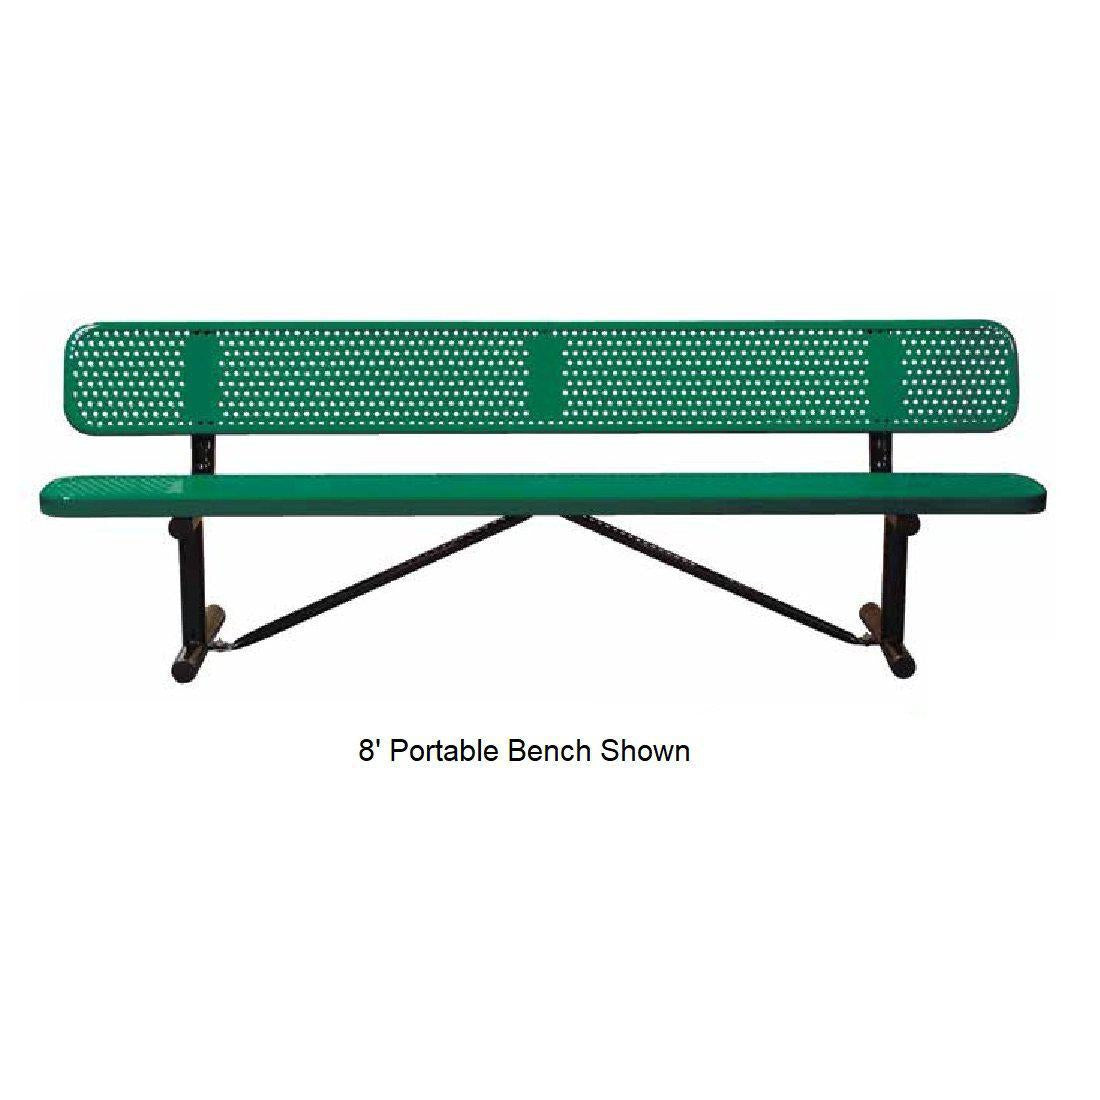 8' Standard Perforated Bench With Back, Portable